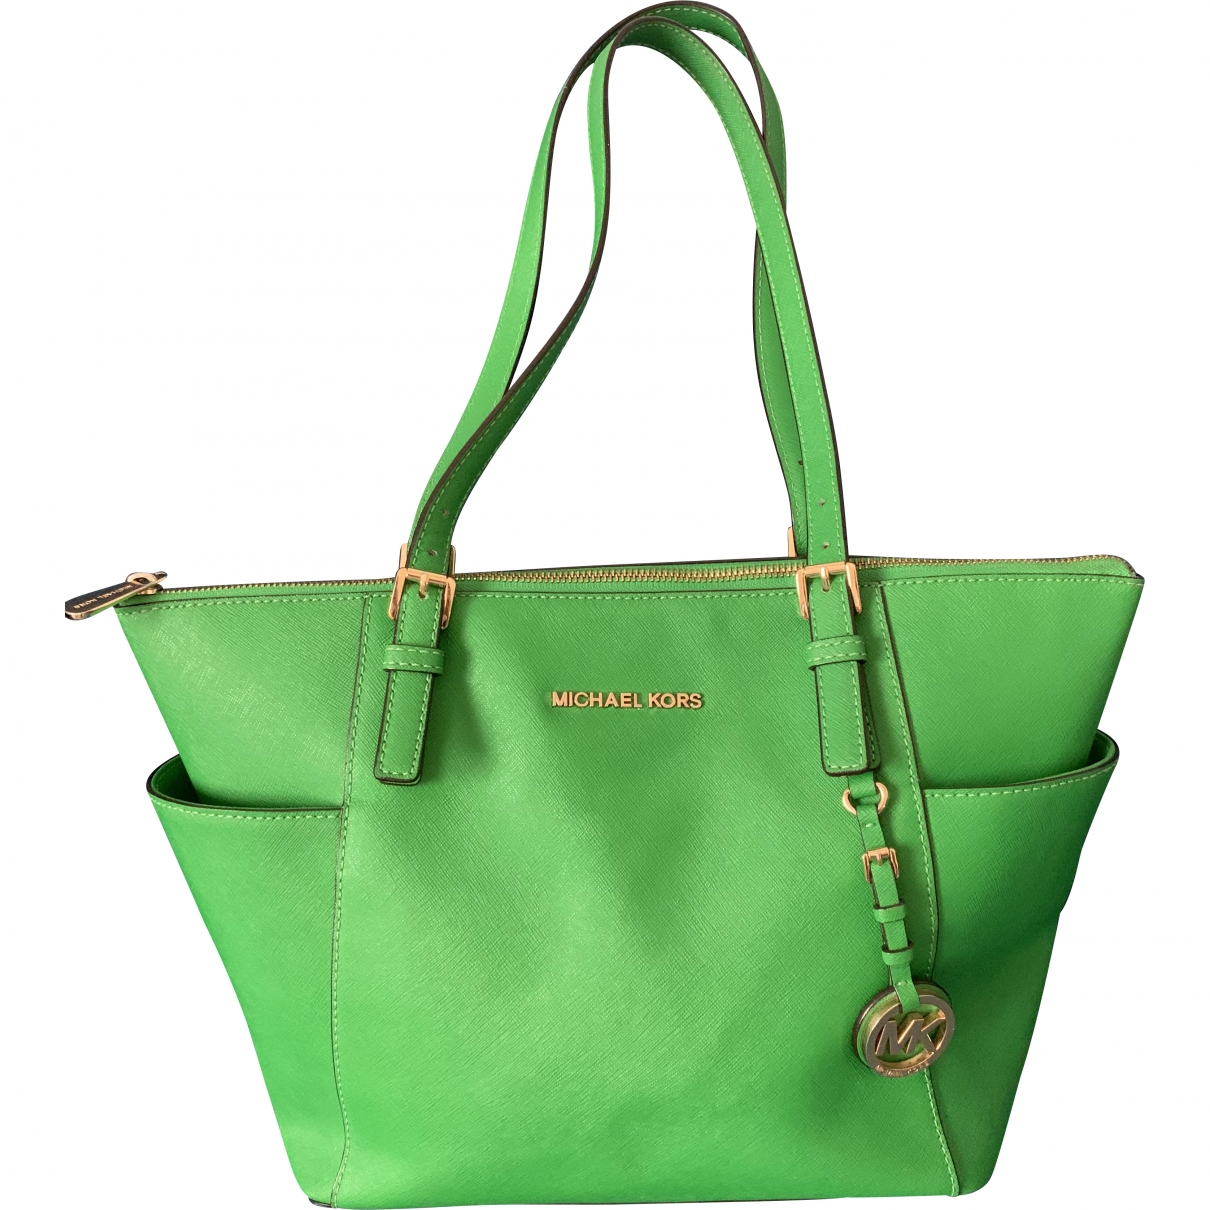 Michael Kors Jet Set Green Leather handbag for Women \N